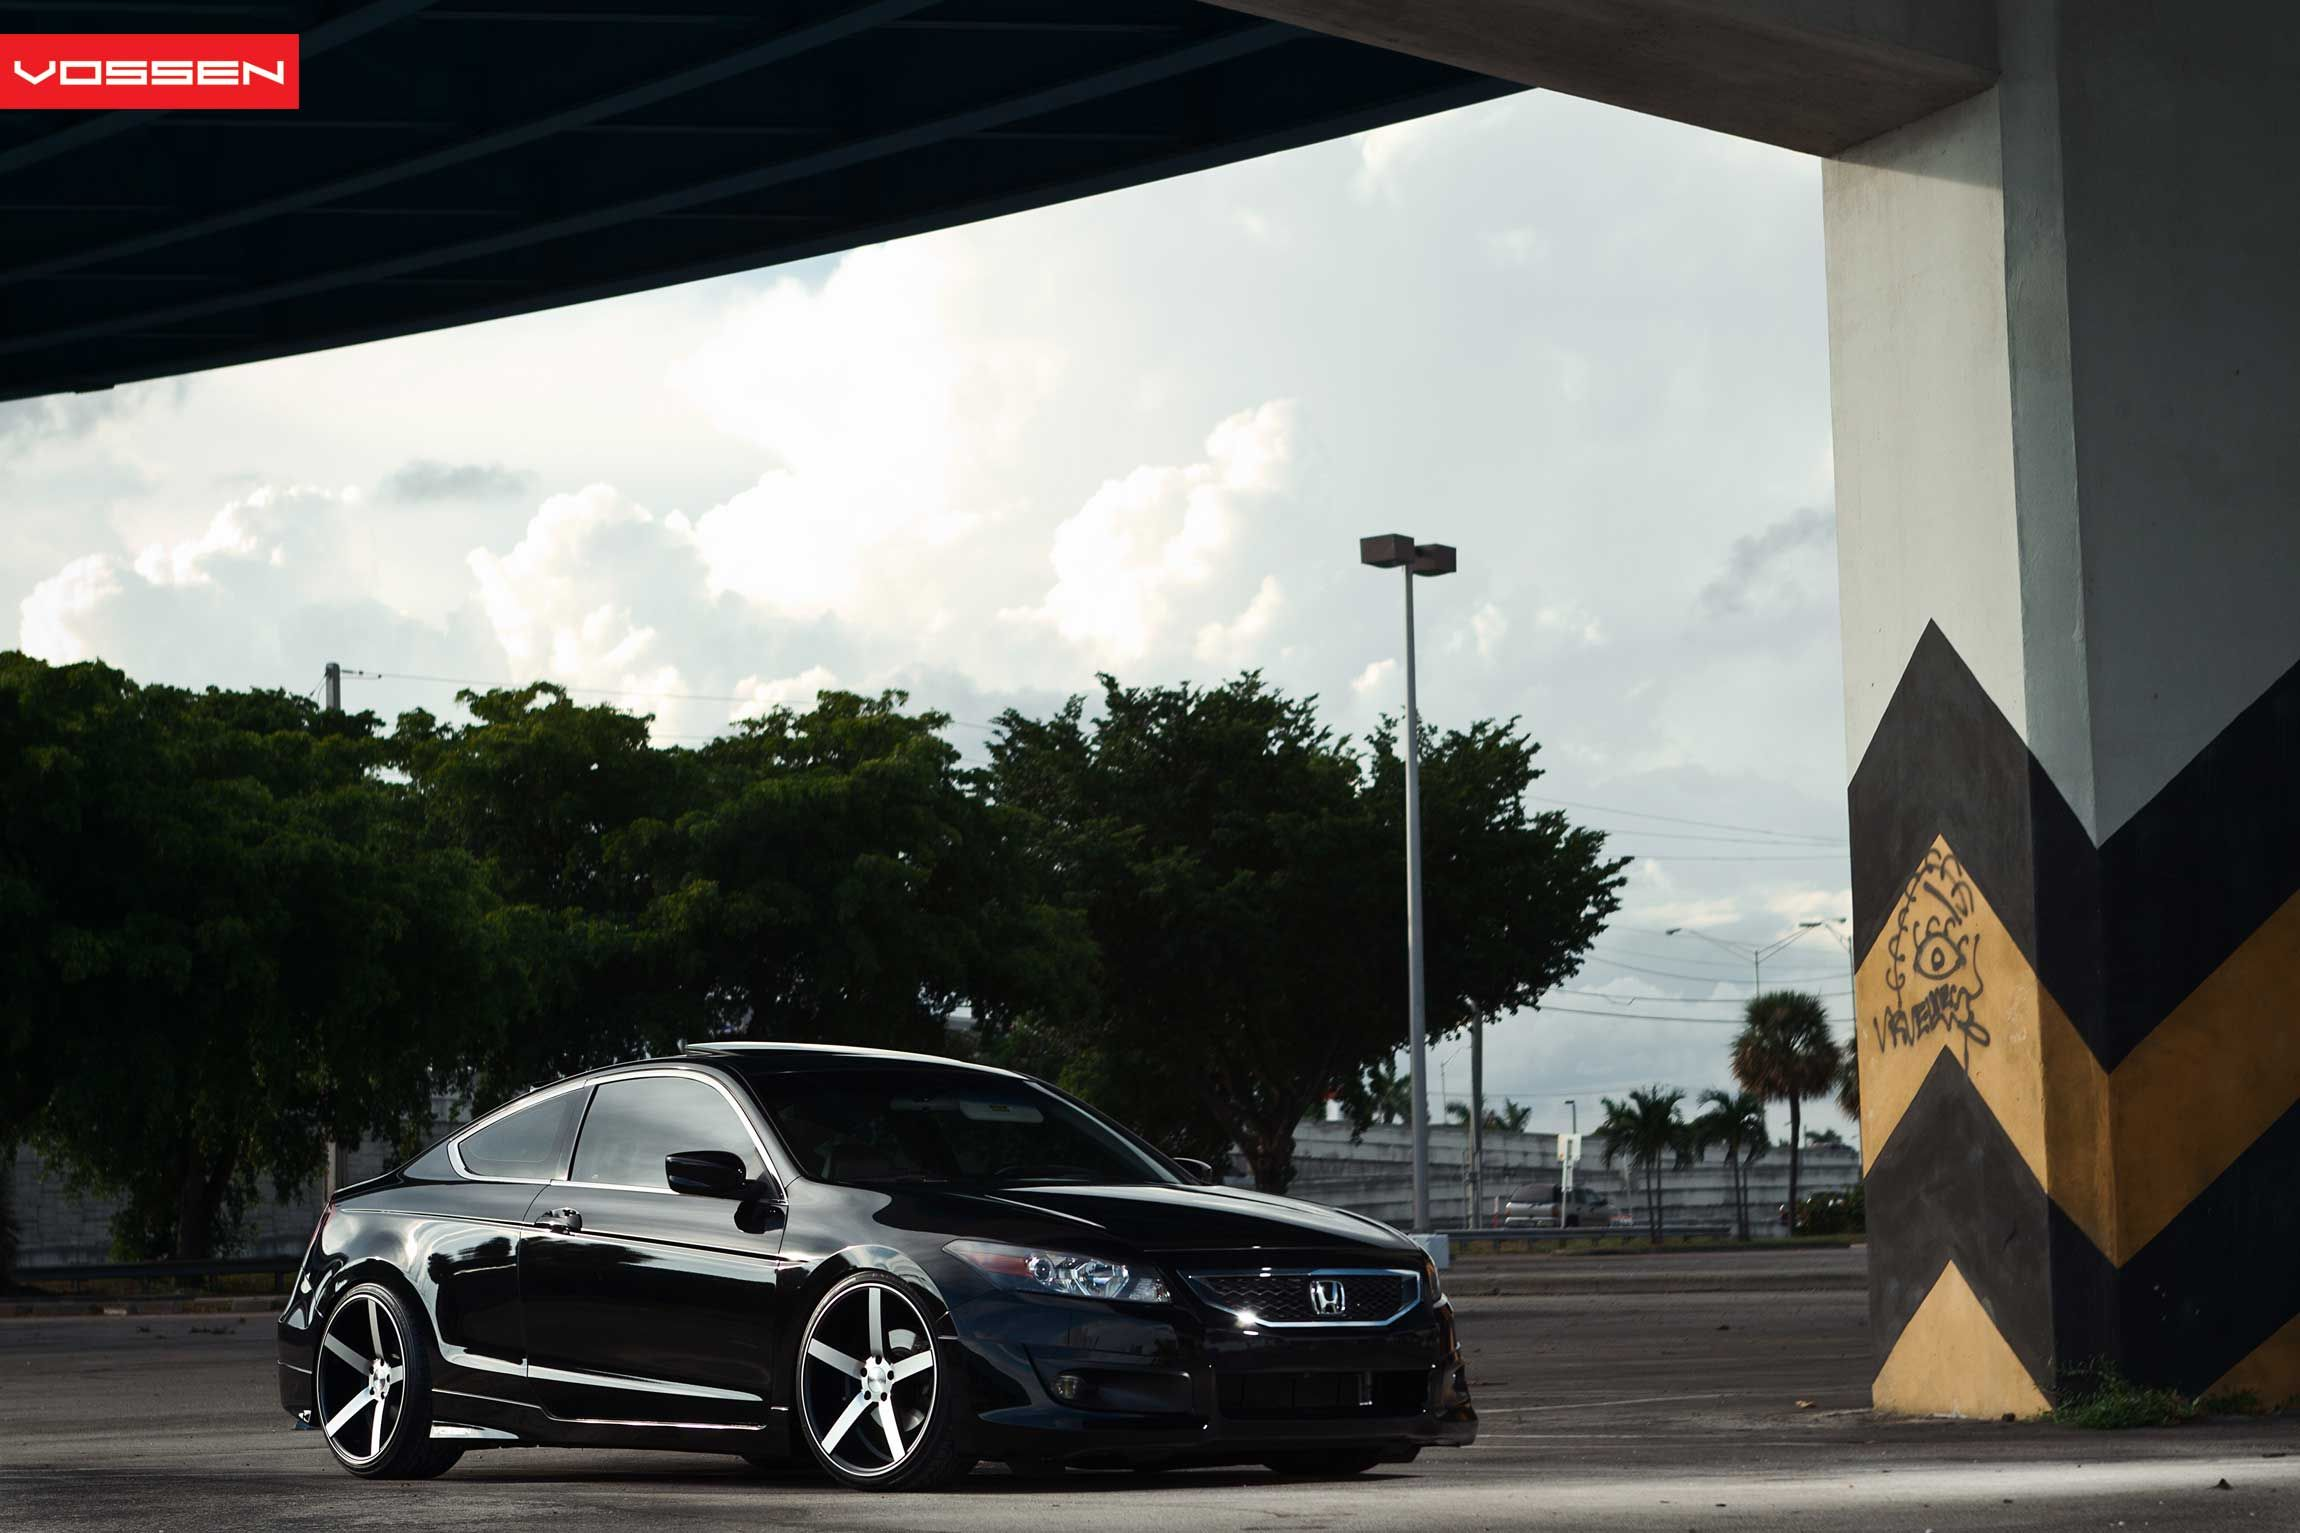 medium resolution of honda accord coupe on vossen vvscv3 wheels and full body kit will be done by the end of the year